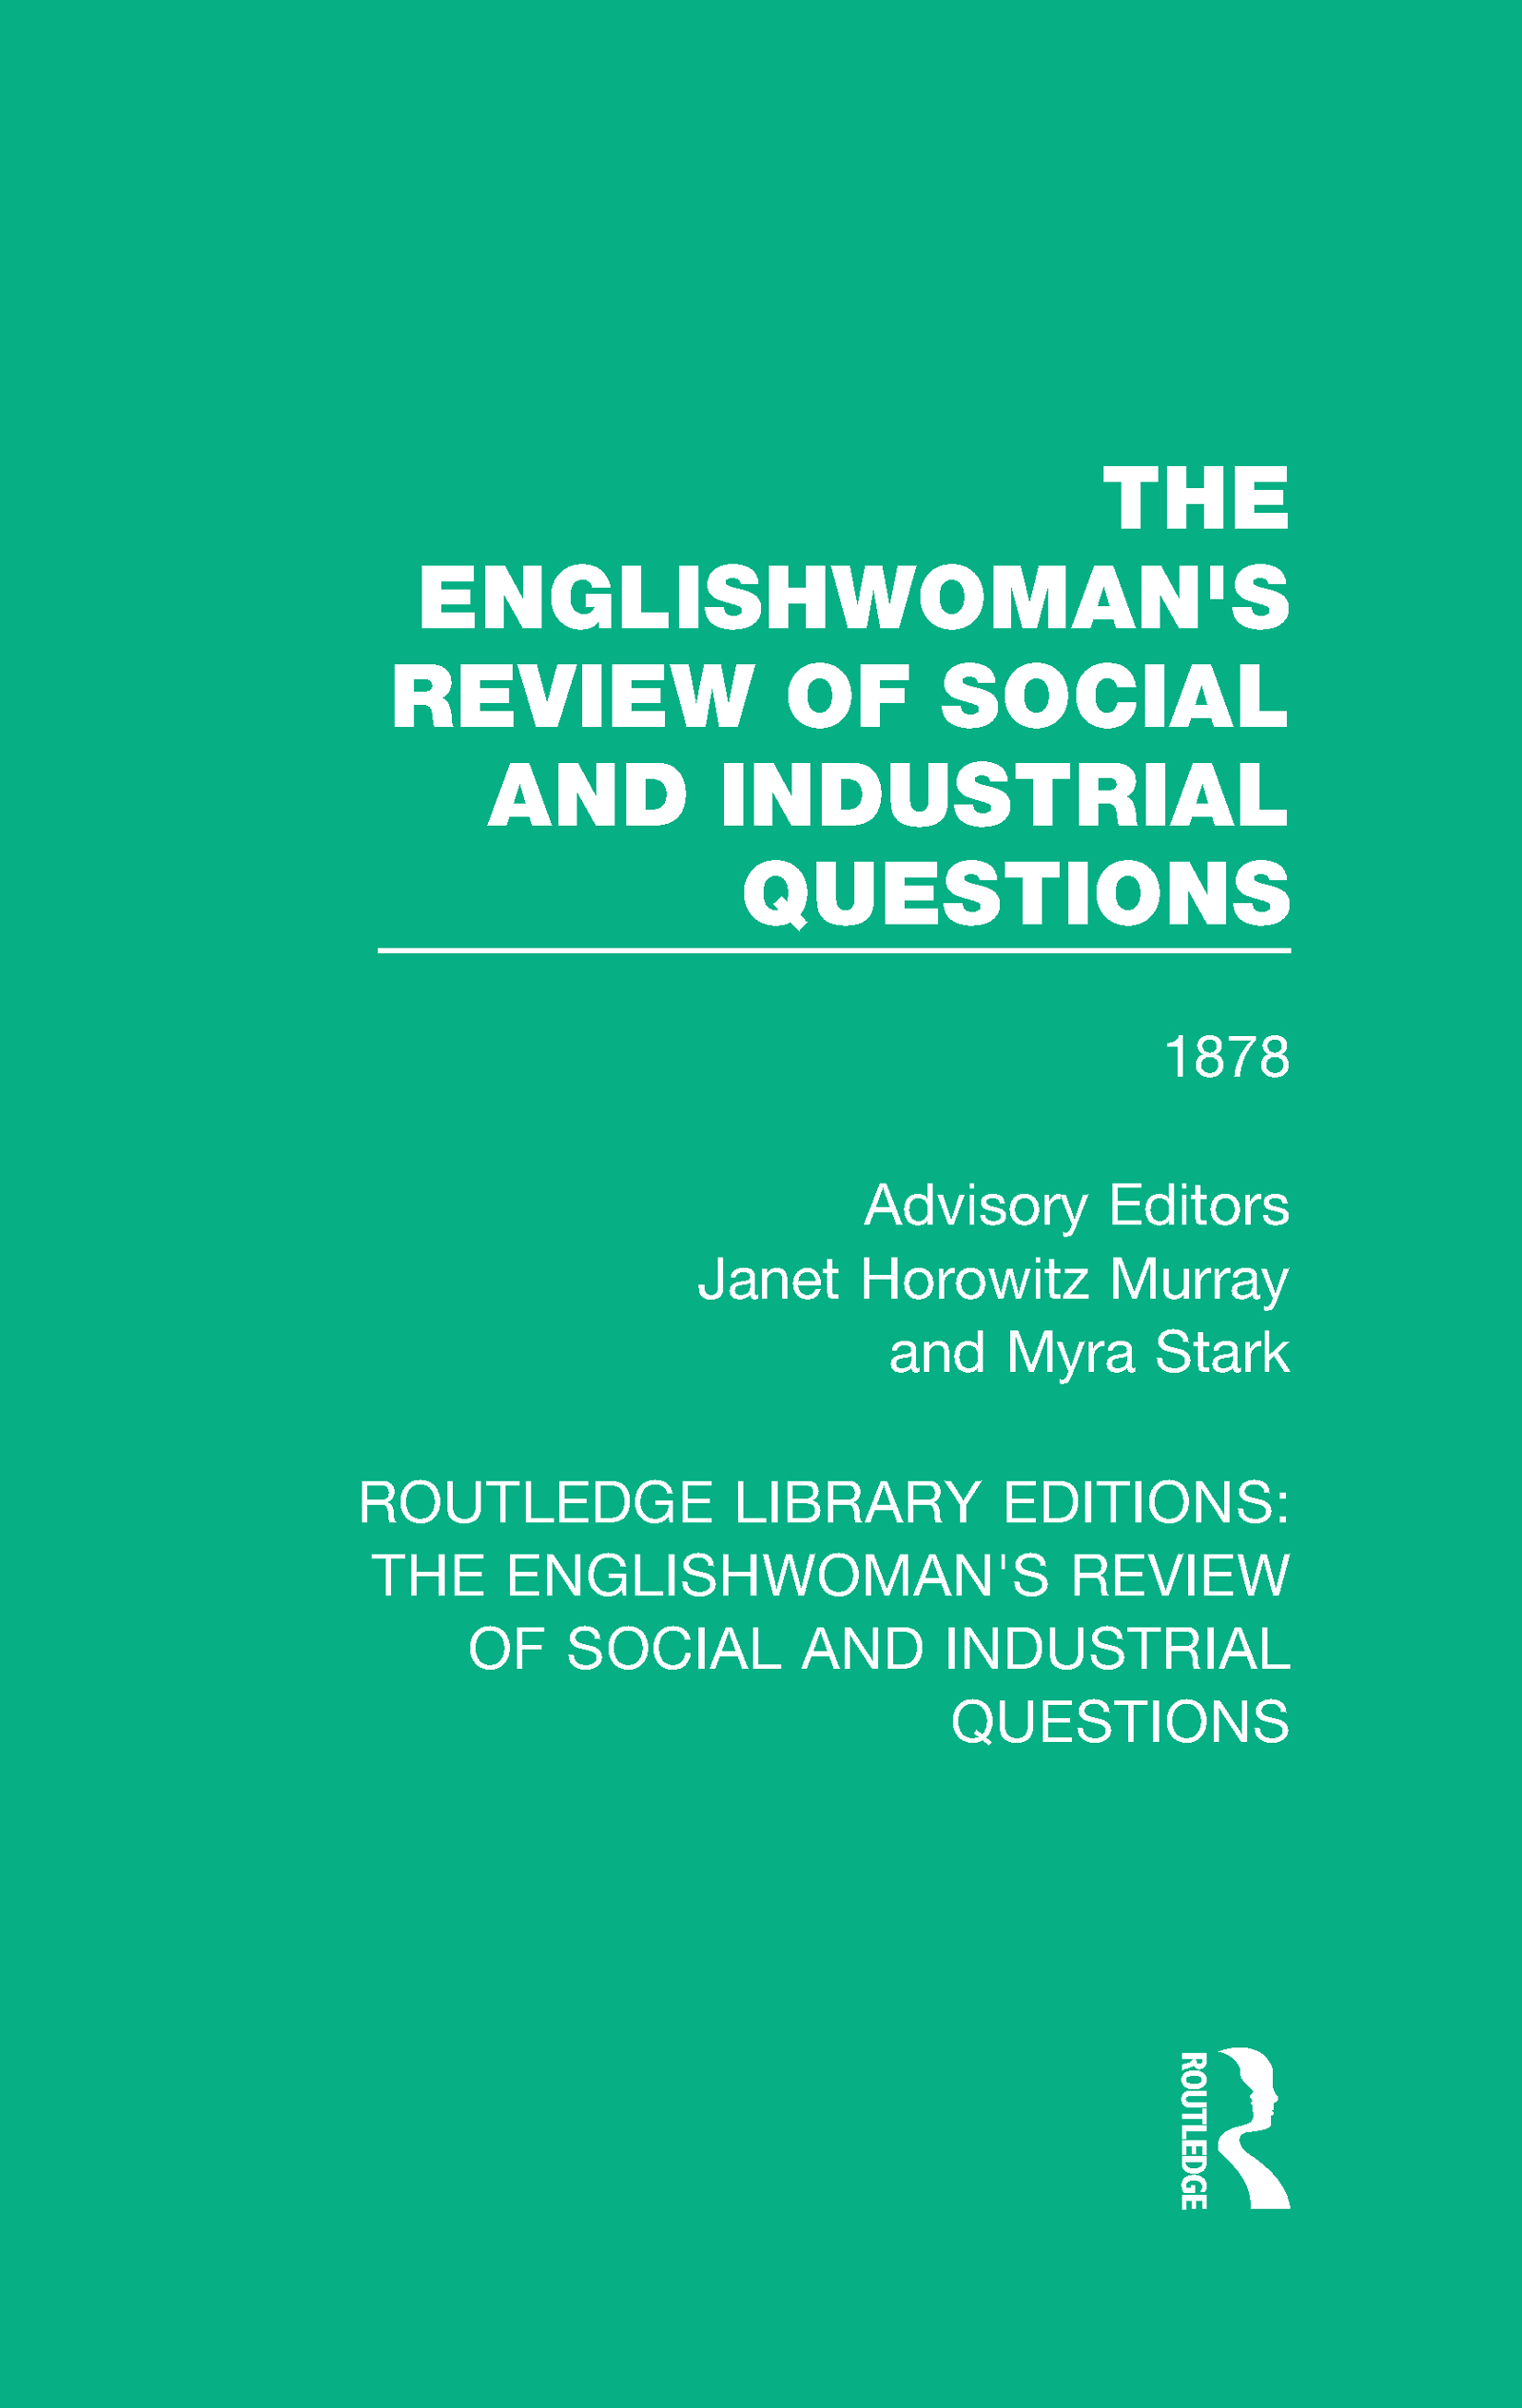 The Englishwoman's Review of Social and Industrial Questions: 1878 book cover